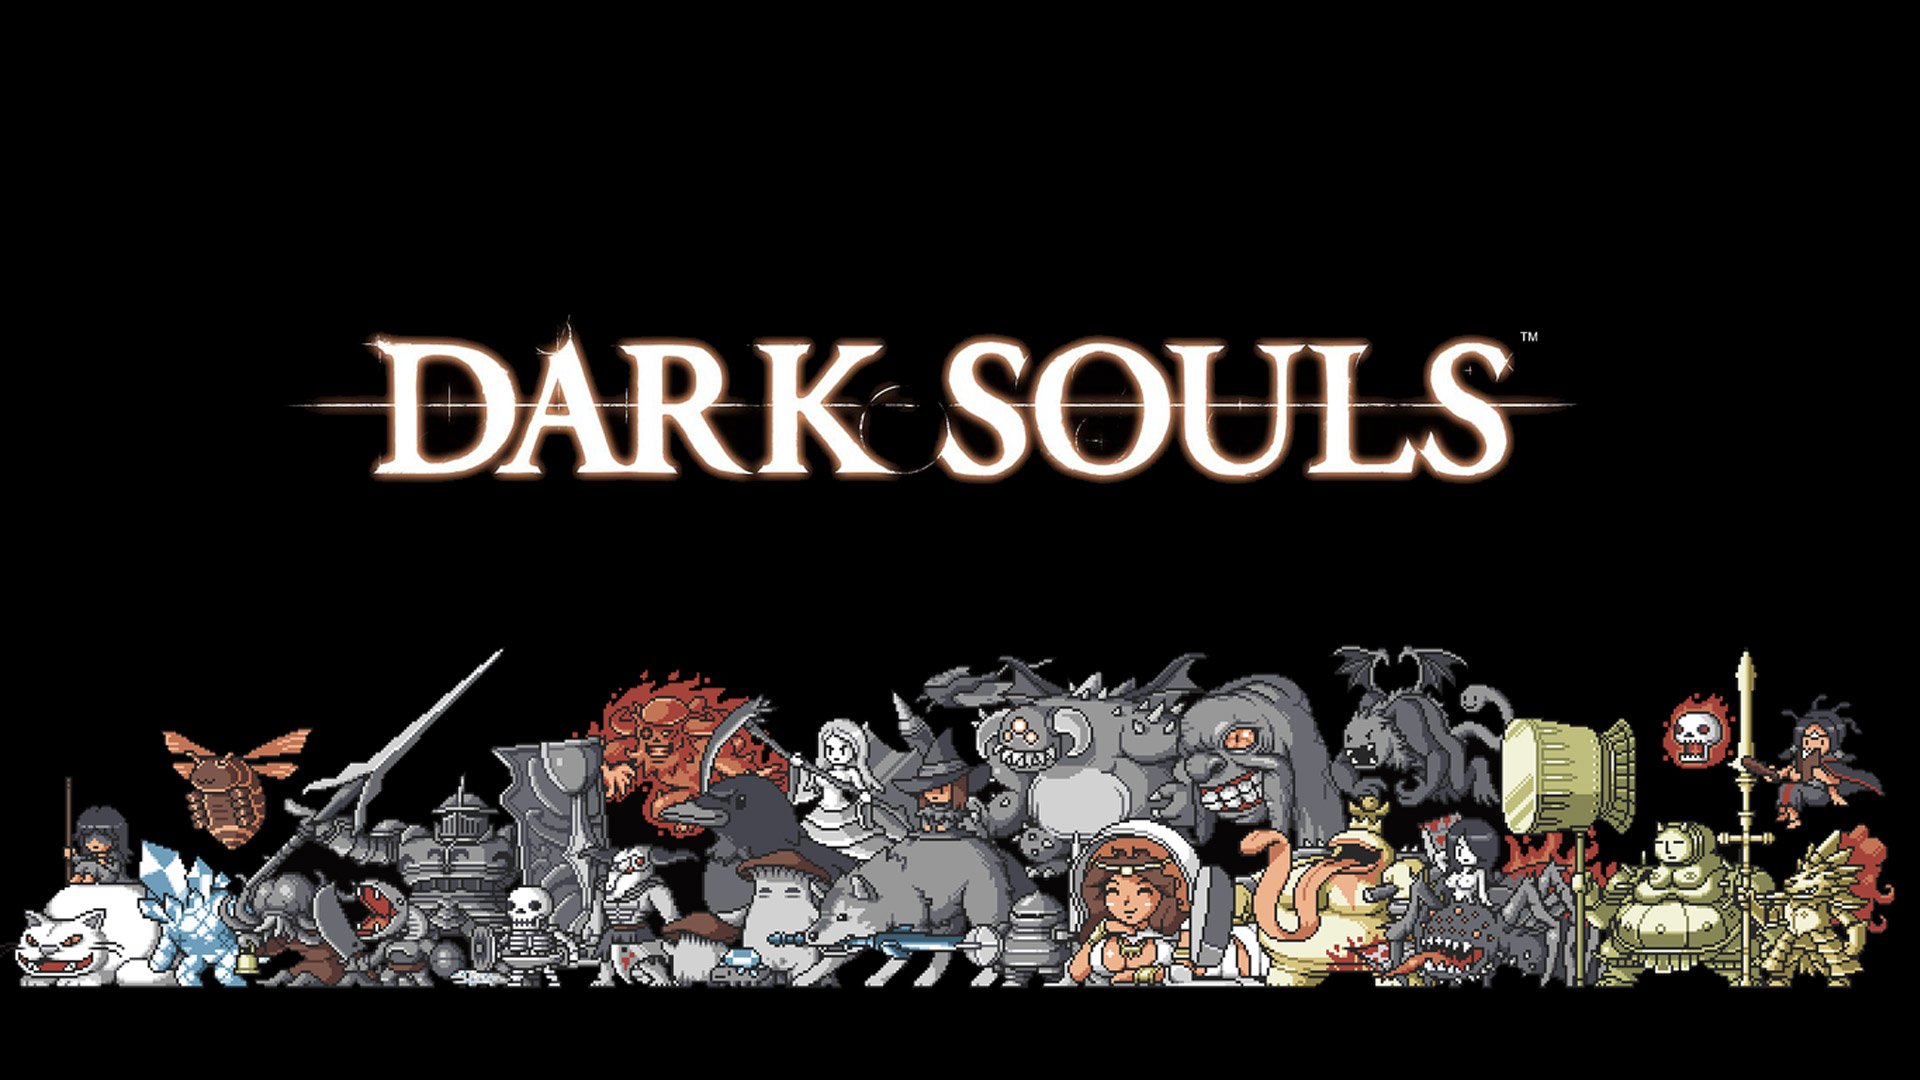 Dark Souls Wallpaper in 1920x1080